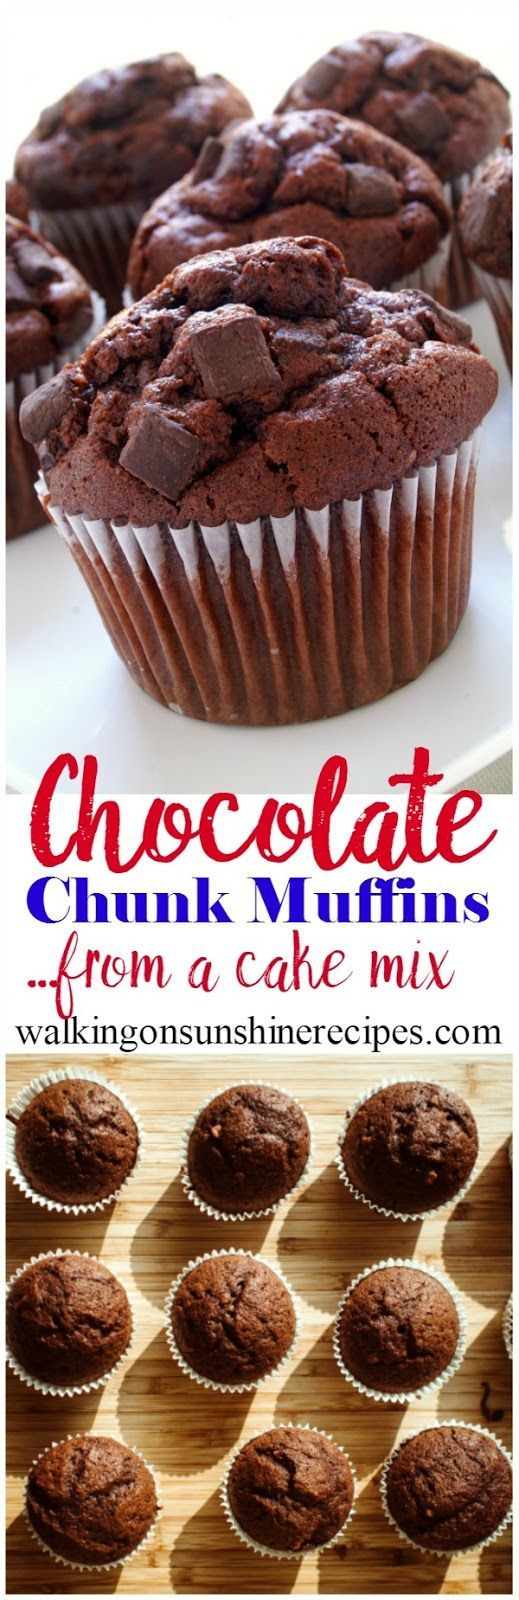 You can have chocolate for breakfast with these chocolate chunk muffins from Walking on Sunshine Recipes.